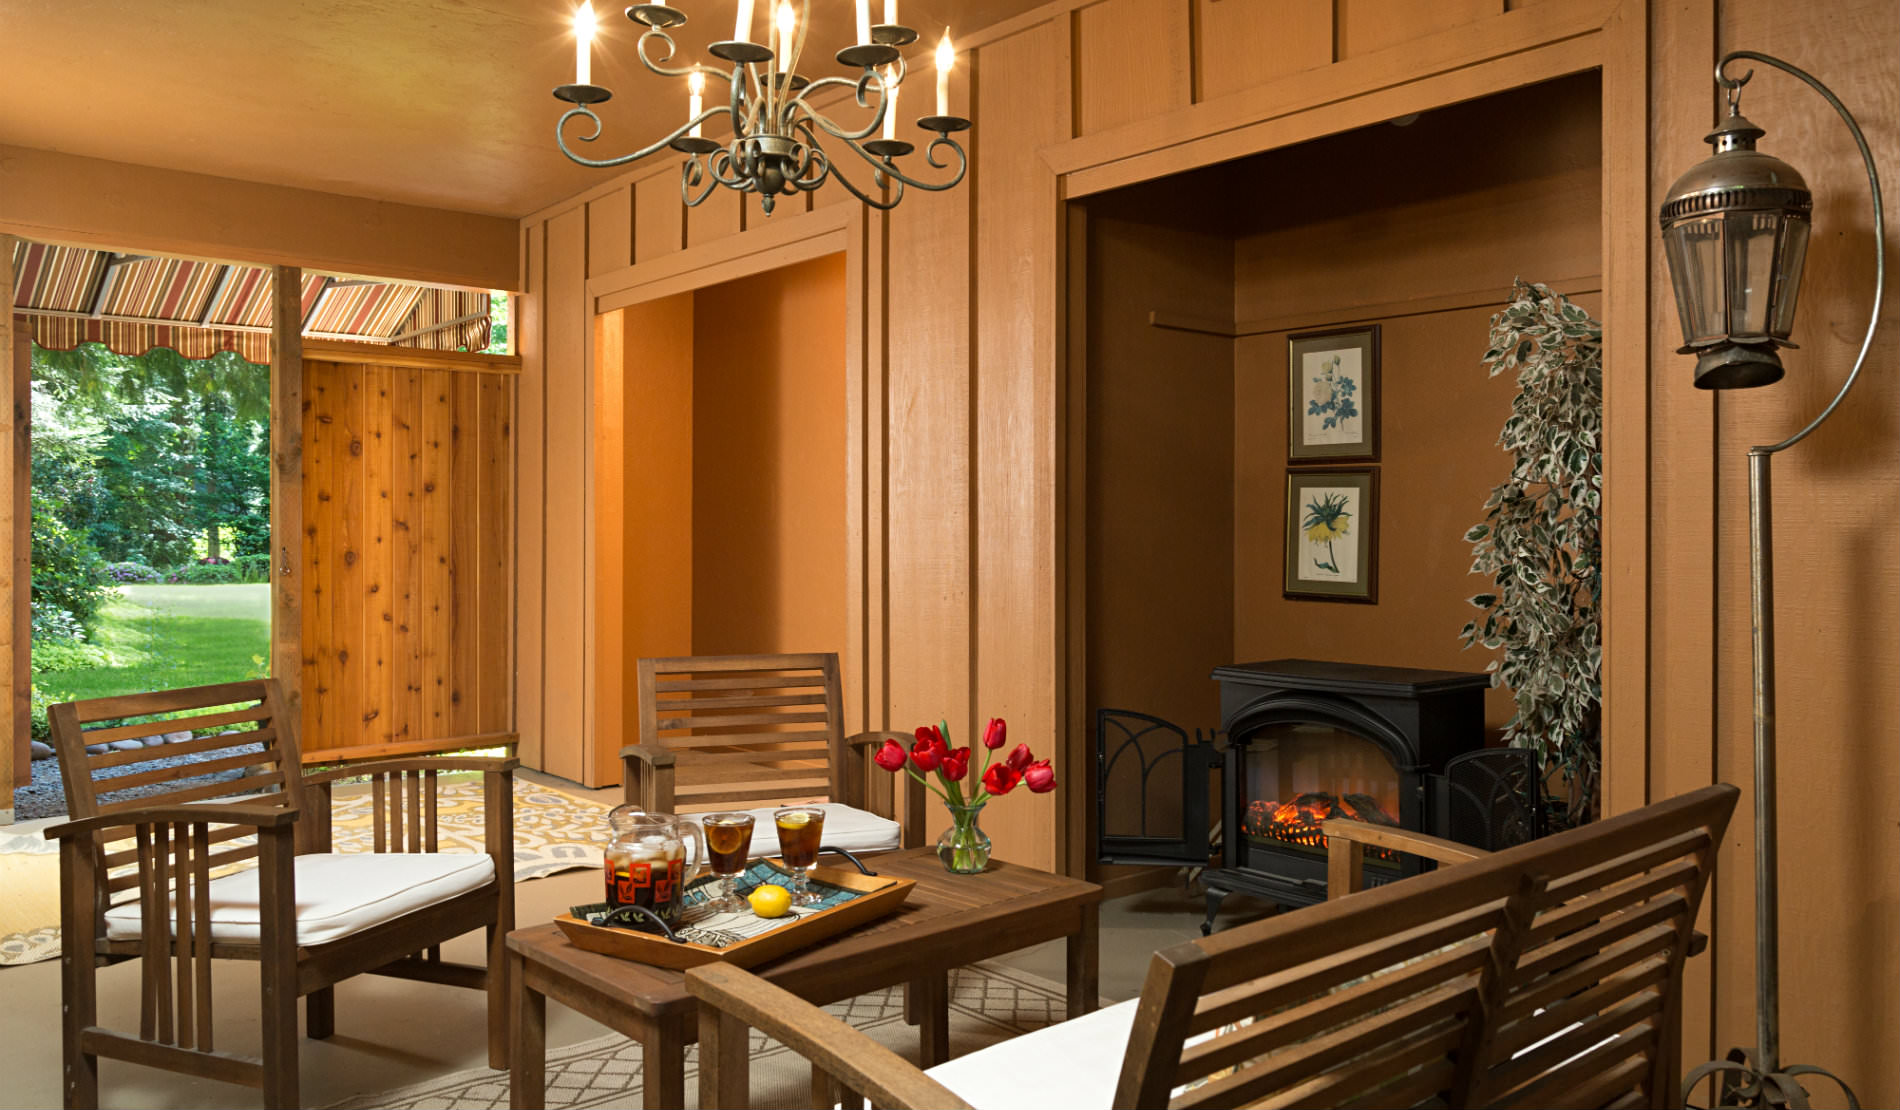 Wood Paneled room with wooden chairs and table set with cold drinks.